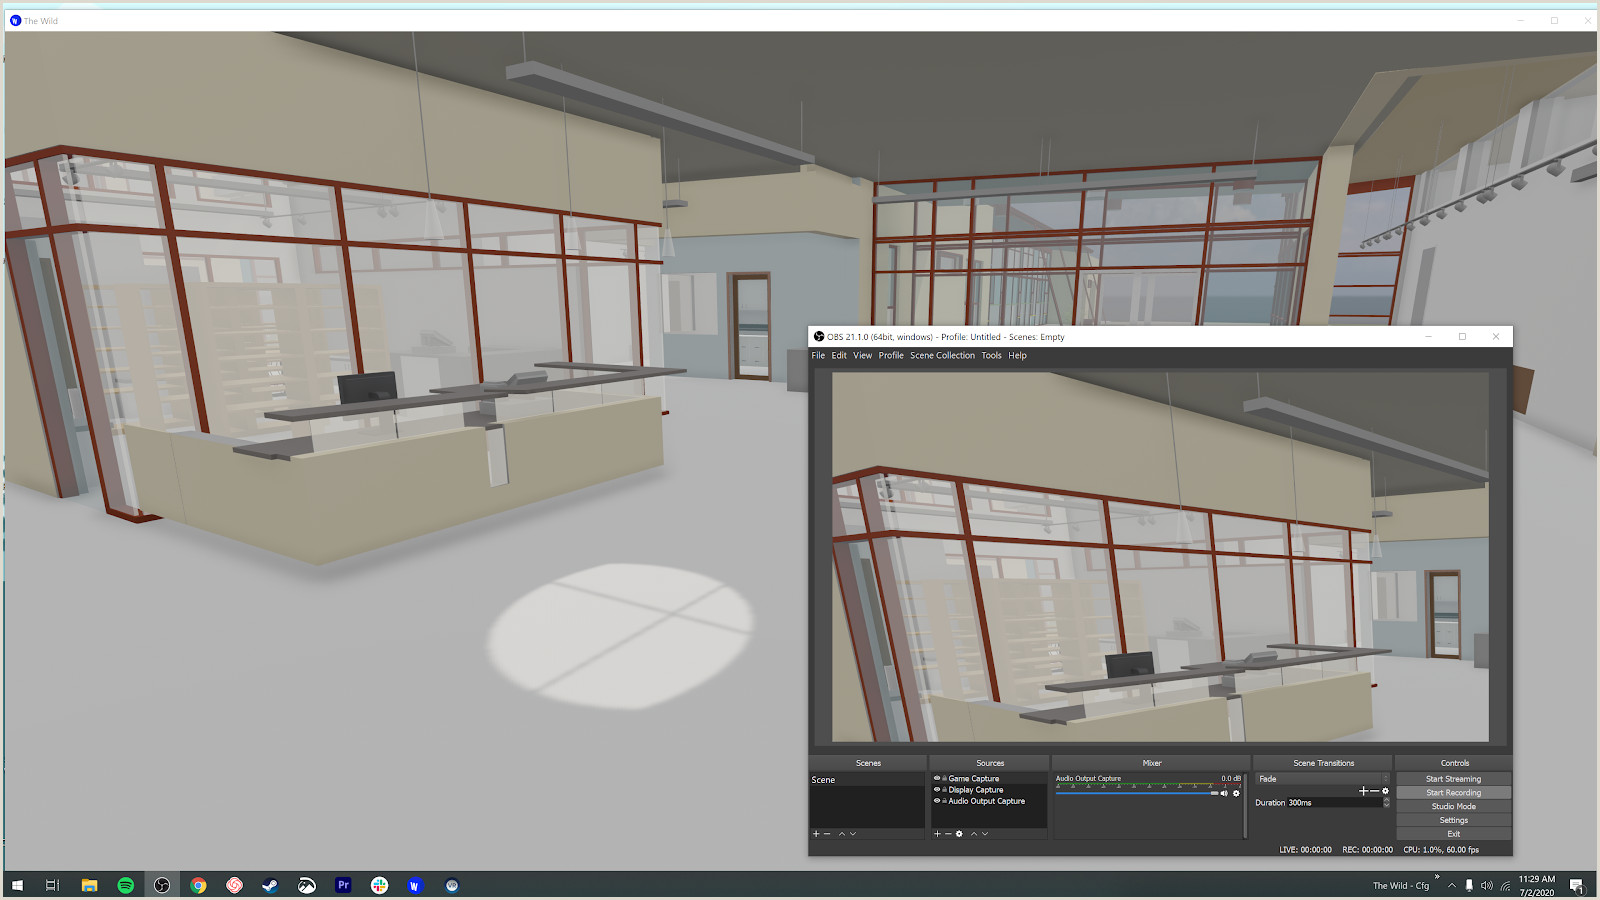 Card Layout Ideas Getting Started With Vr For Your Architecture & Design Team